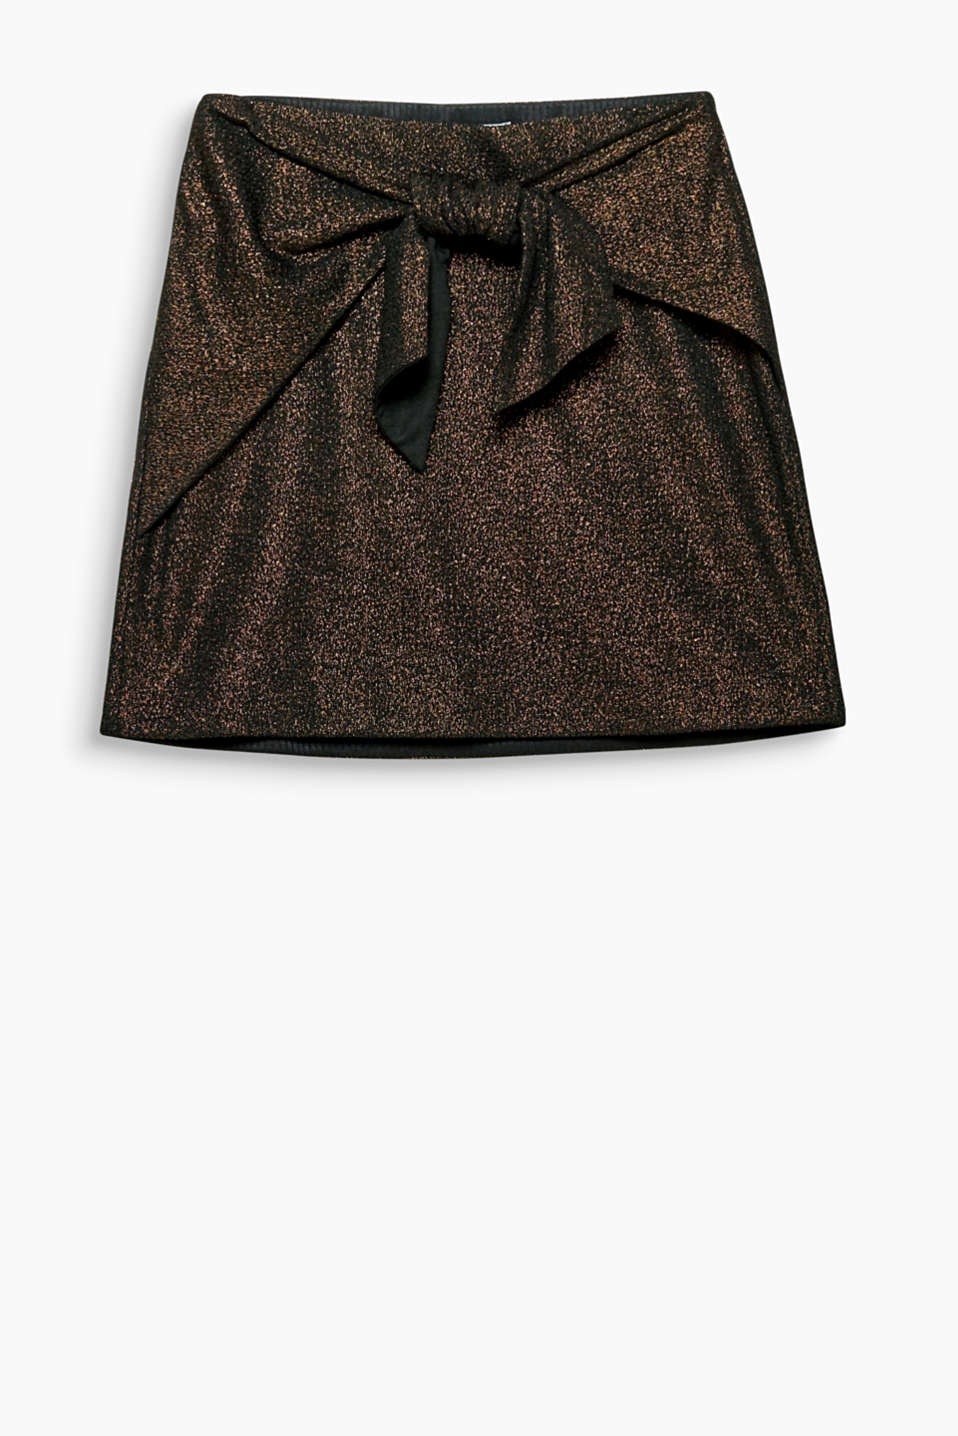 Party all night! This mini skirt is sure to turn heads thanks to the large knotted detail and metallic finish.